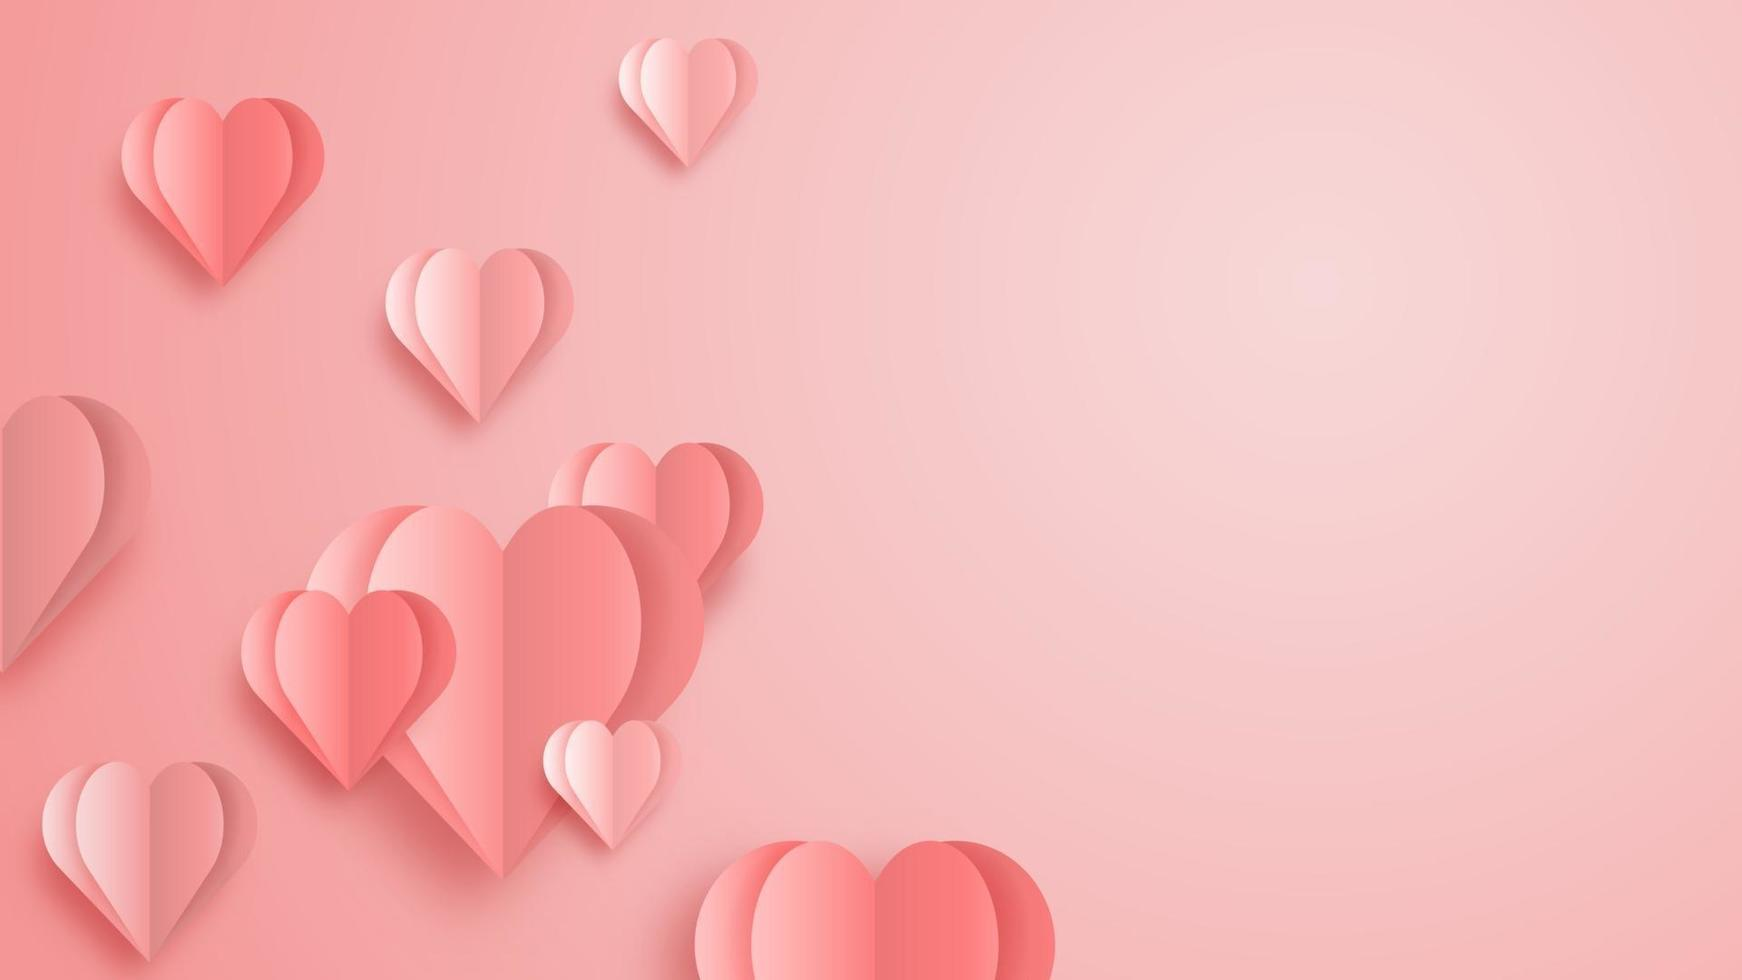 3D origami heart flying on pink background. Love concept design for happy mother's day, valentine's day, birthday day. Poster and greeting card template. vector paper art illustration.